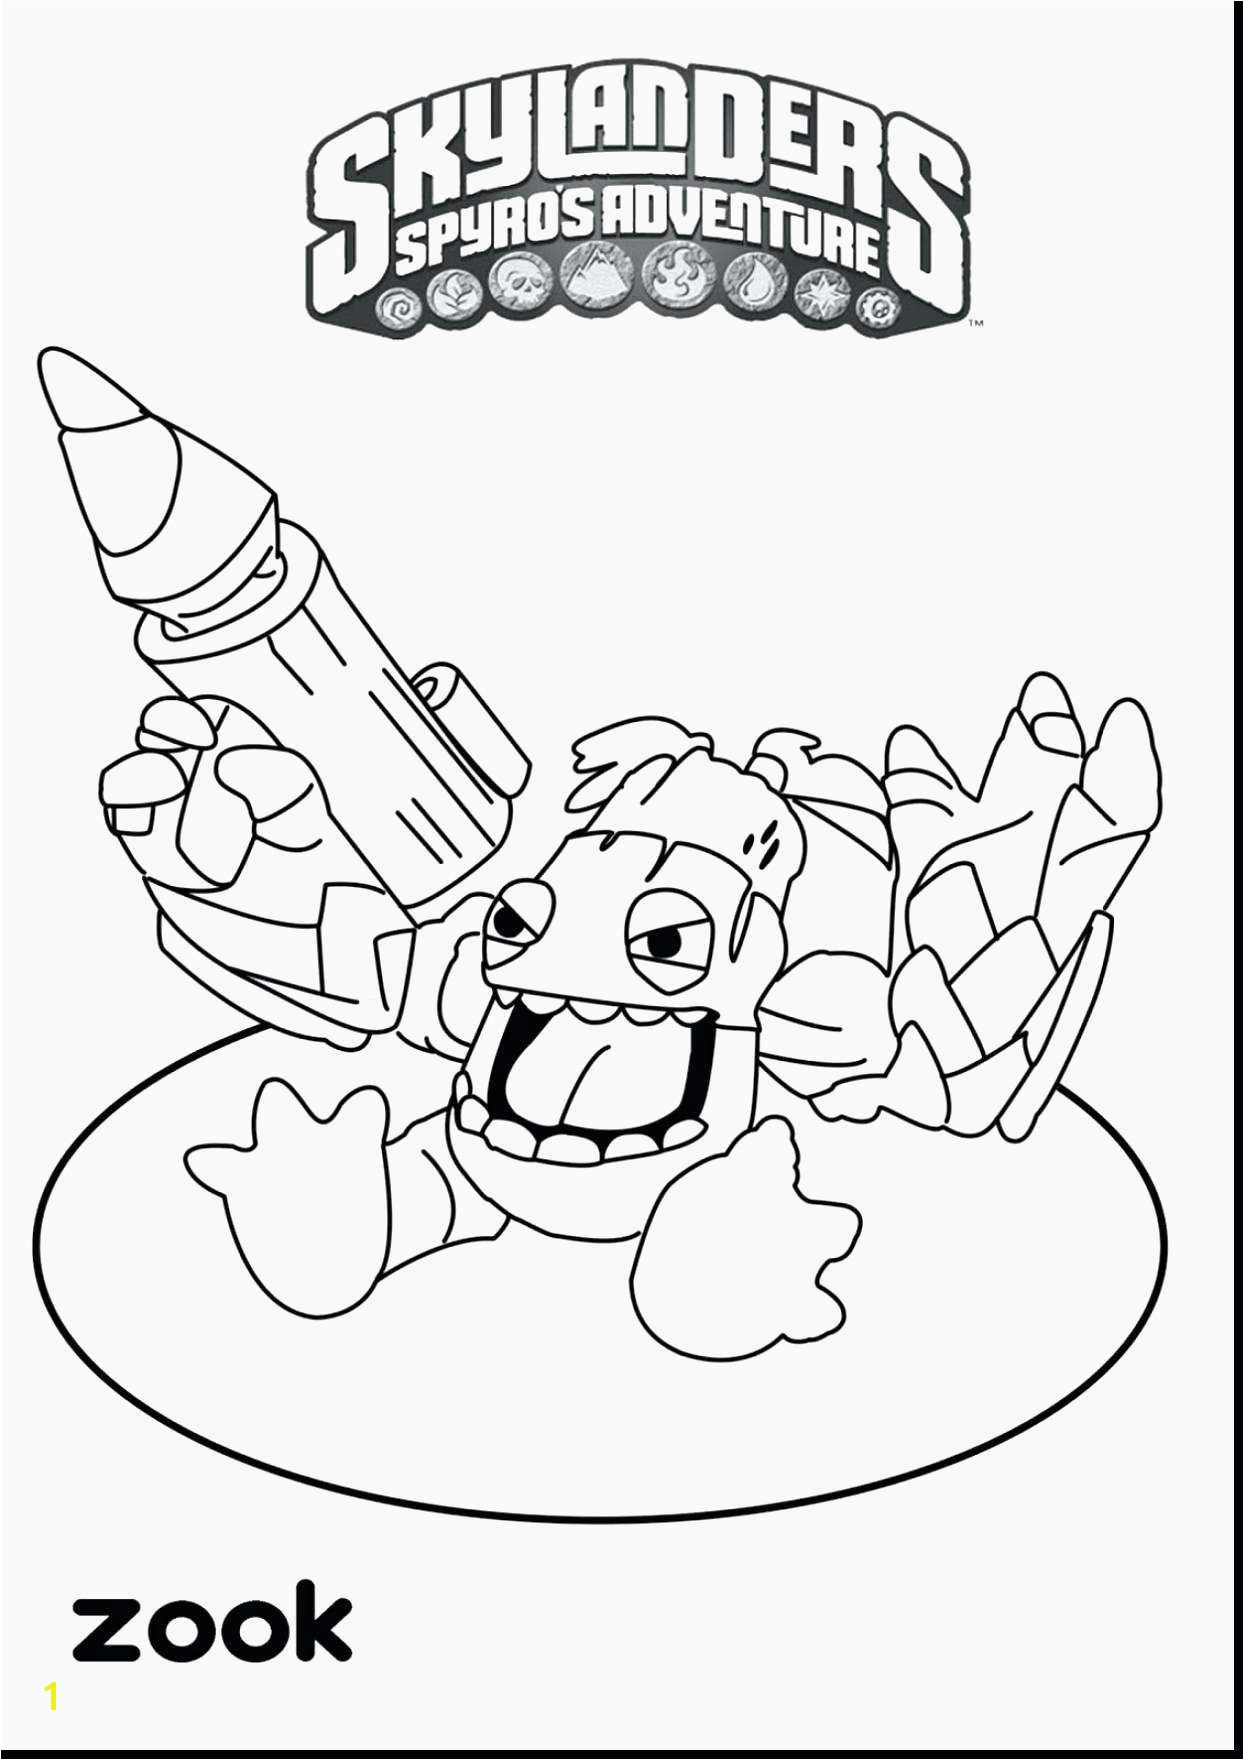 Free Coloring Pages for Girl Scouts Free Girl Scout Coloring Pages for Daisies Printable Coloring Pages